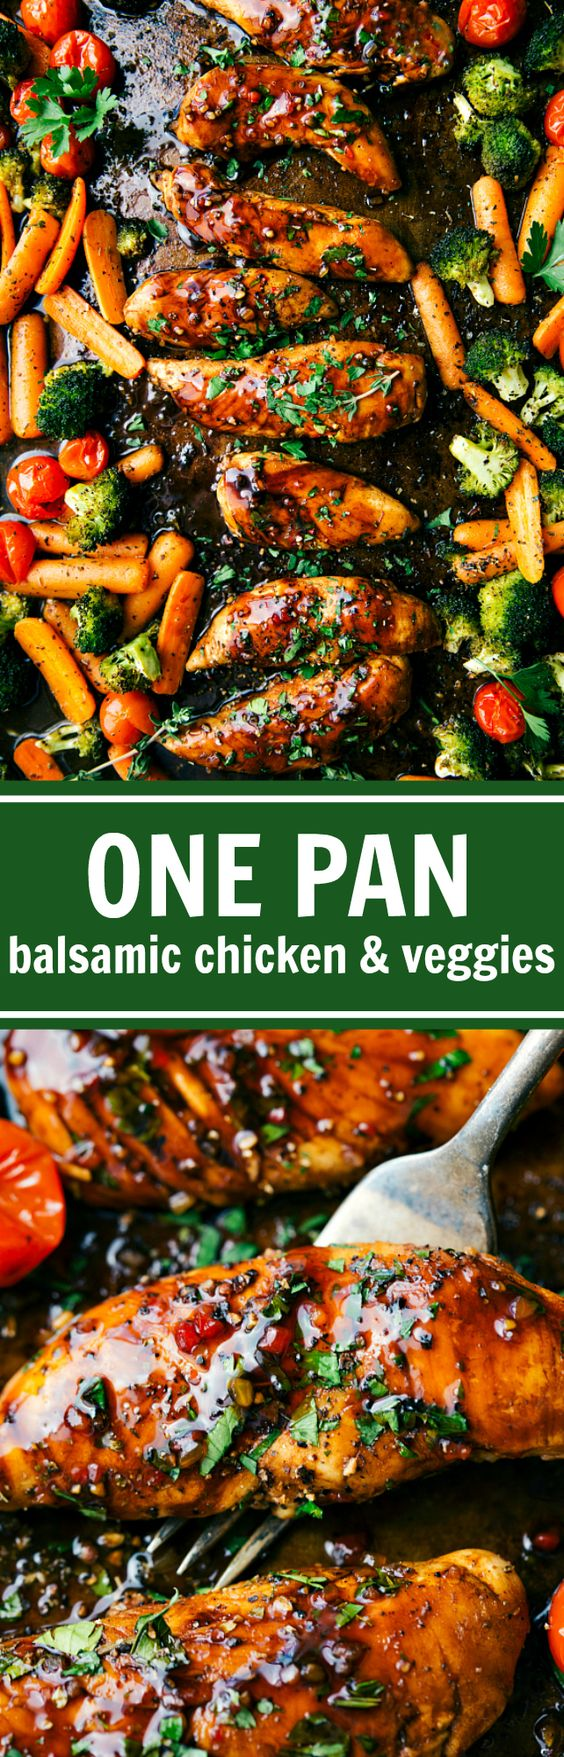 Sweet Balsamic chicken and veggies made in one pan - via Chelsea's Messy Apron - Ten minute prep and twenty minute cooking time -- this meal is efficient, healthy, and simple to make! #sheetpansuppers #sheetpanrecipes #sheetpandinners #onepanmeals #healthyrecipes #mealprep #easyrecipes #healthydinners #healthysuppers #healthylunches #simplefamilymeals #simplefamilyrecipes #simplerecipes